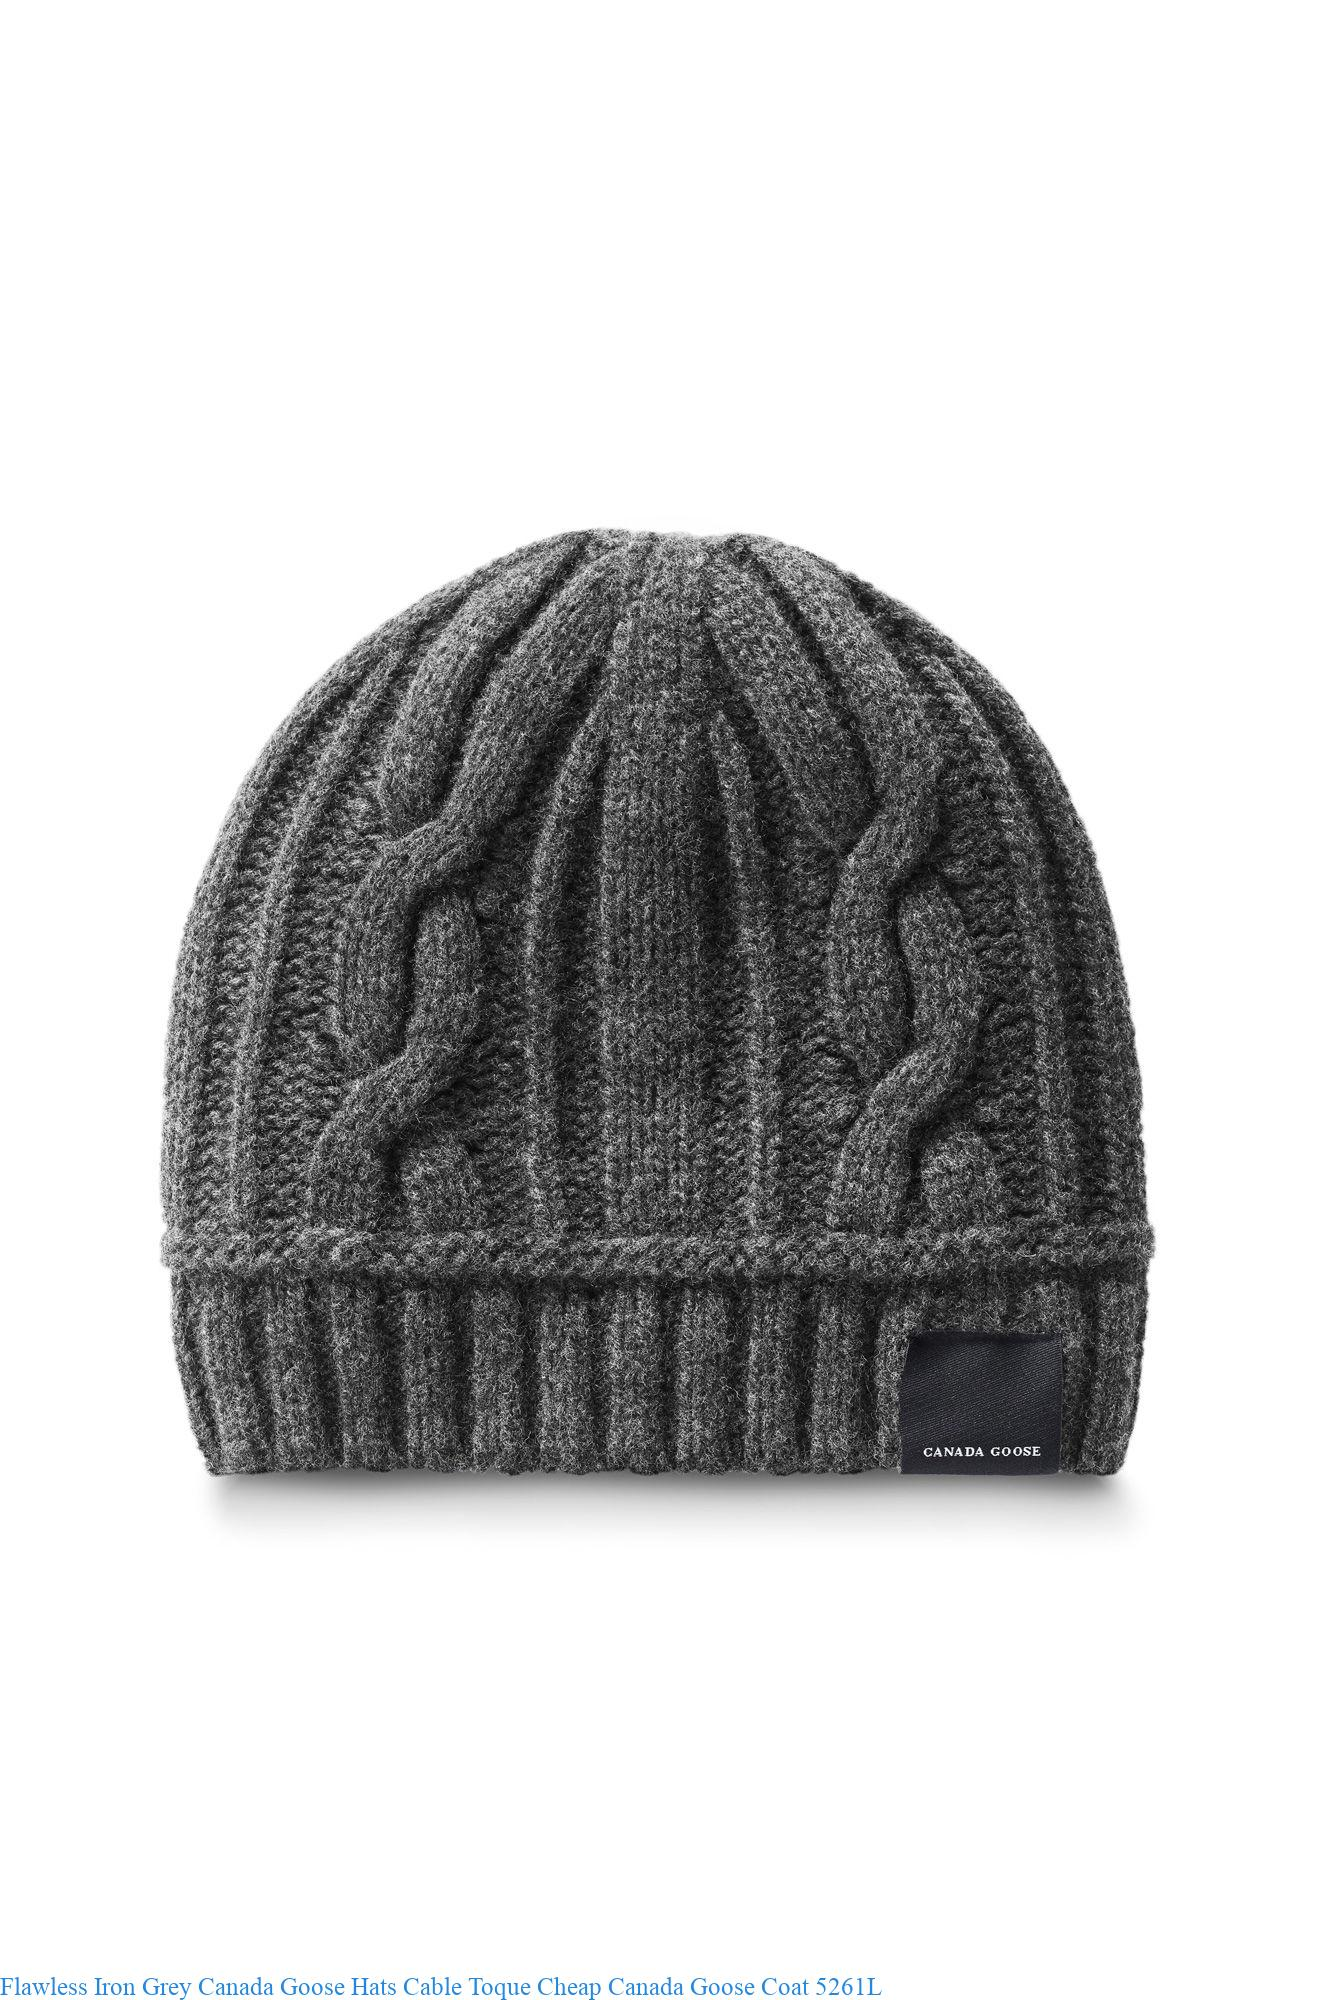 Flawless Iron Grey Canada Goose Hats Cable Toque Cheap Canada Goose Coat  5261L 12bed422e19a